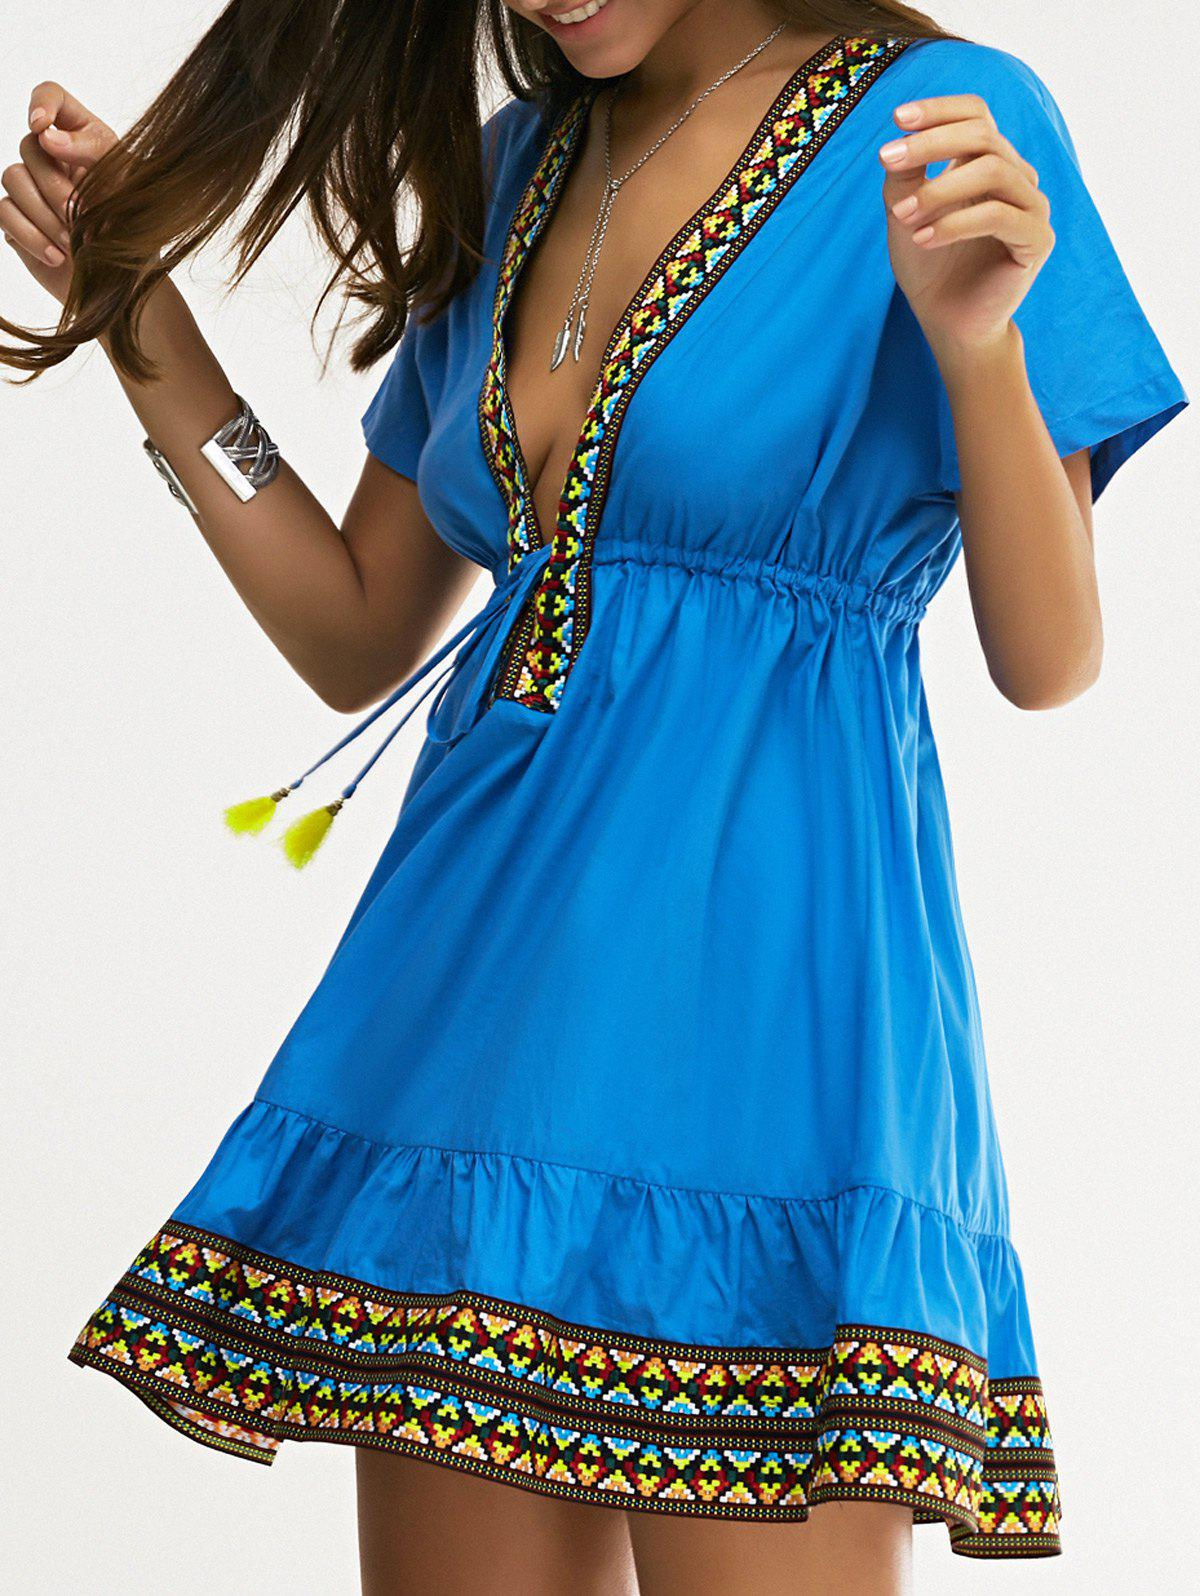 Ethnic Style Women's Slimming Plunging Neck Low-Cut Dress - SAPPHIRE BLUE XL